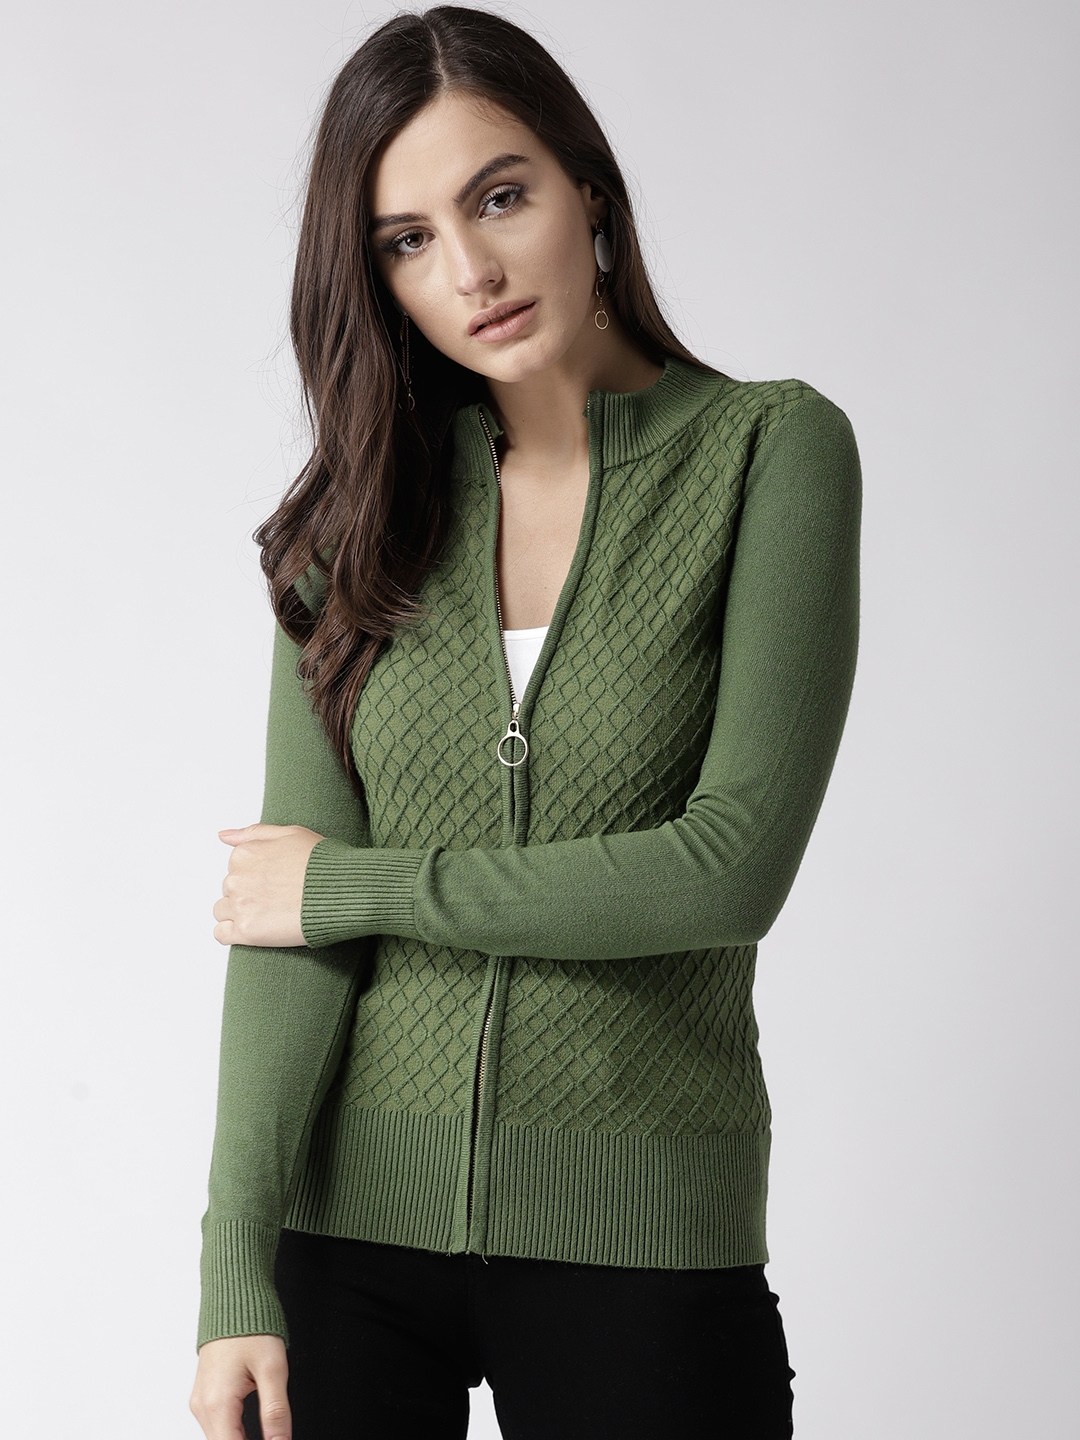 649f5c183 Buy Fort Collins Women Olive Green Cable Knit Cardigan - Sweaters ...